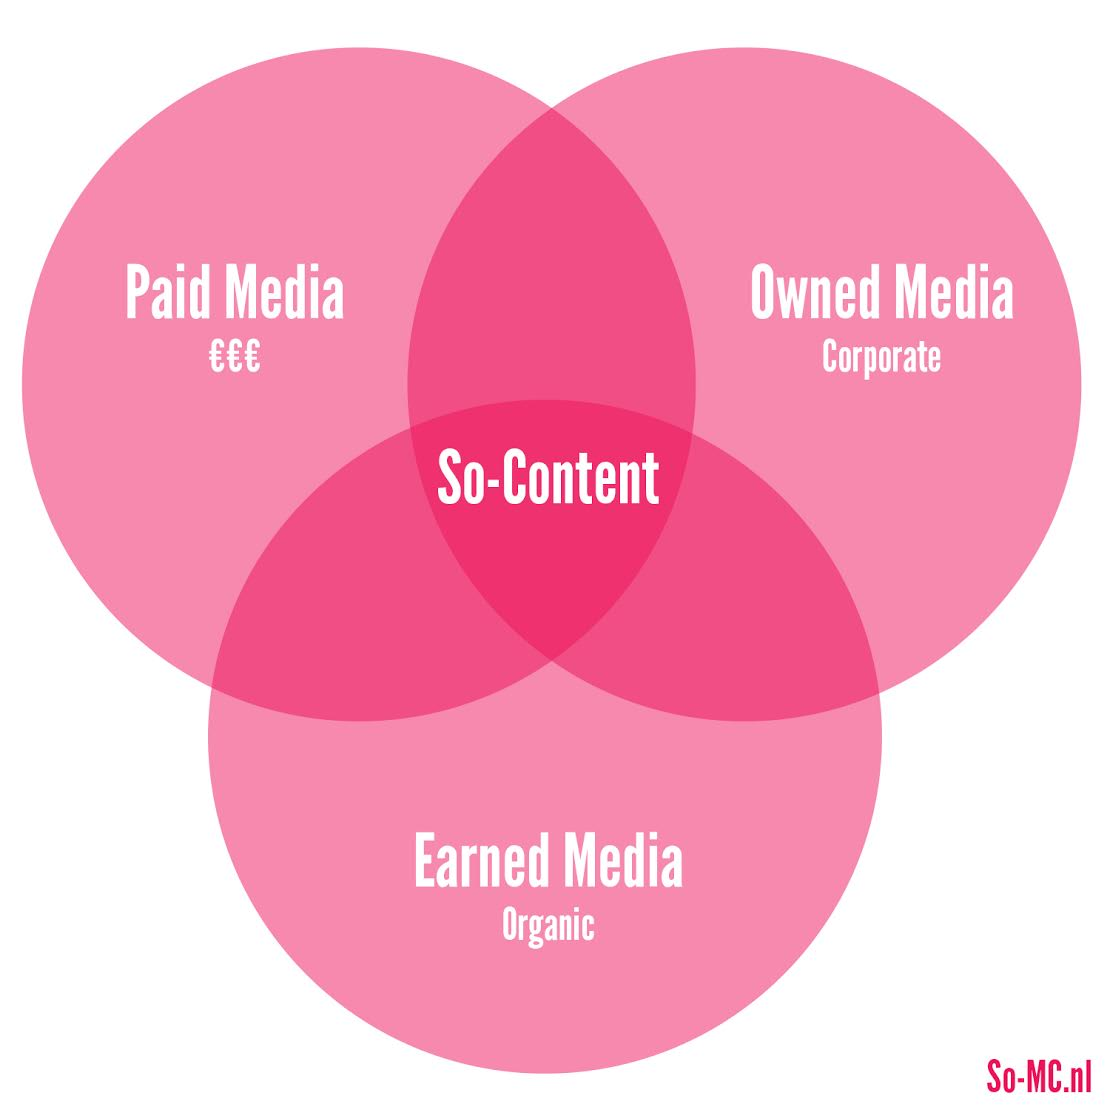 Earned Owned Paid Media